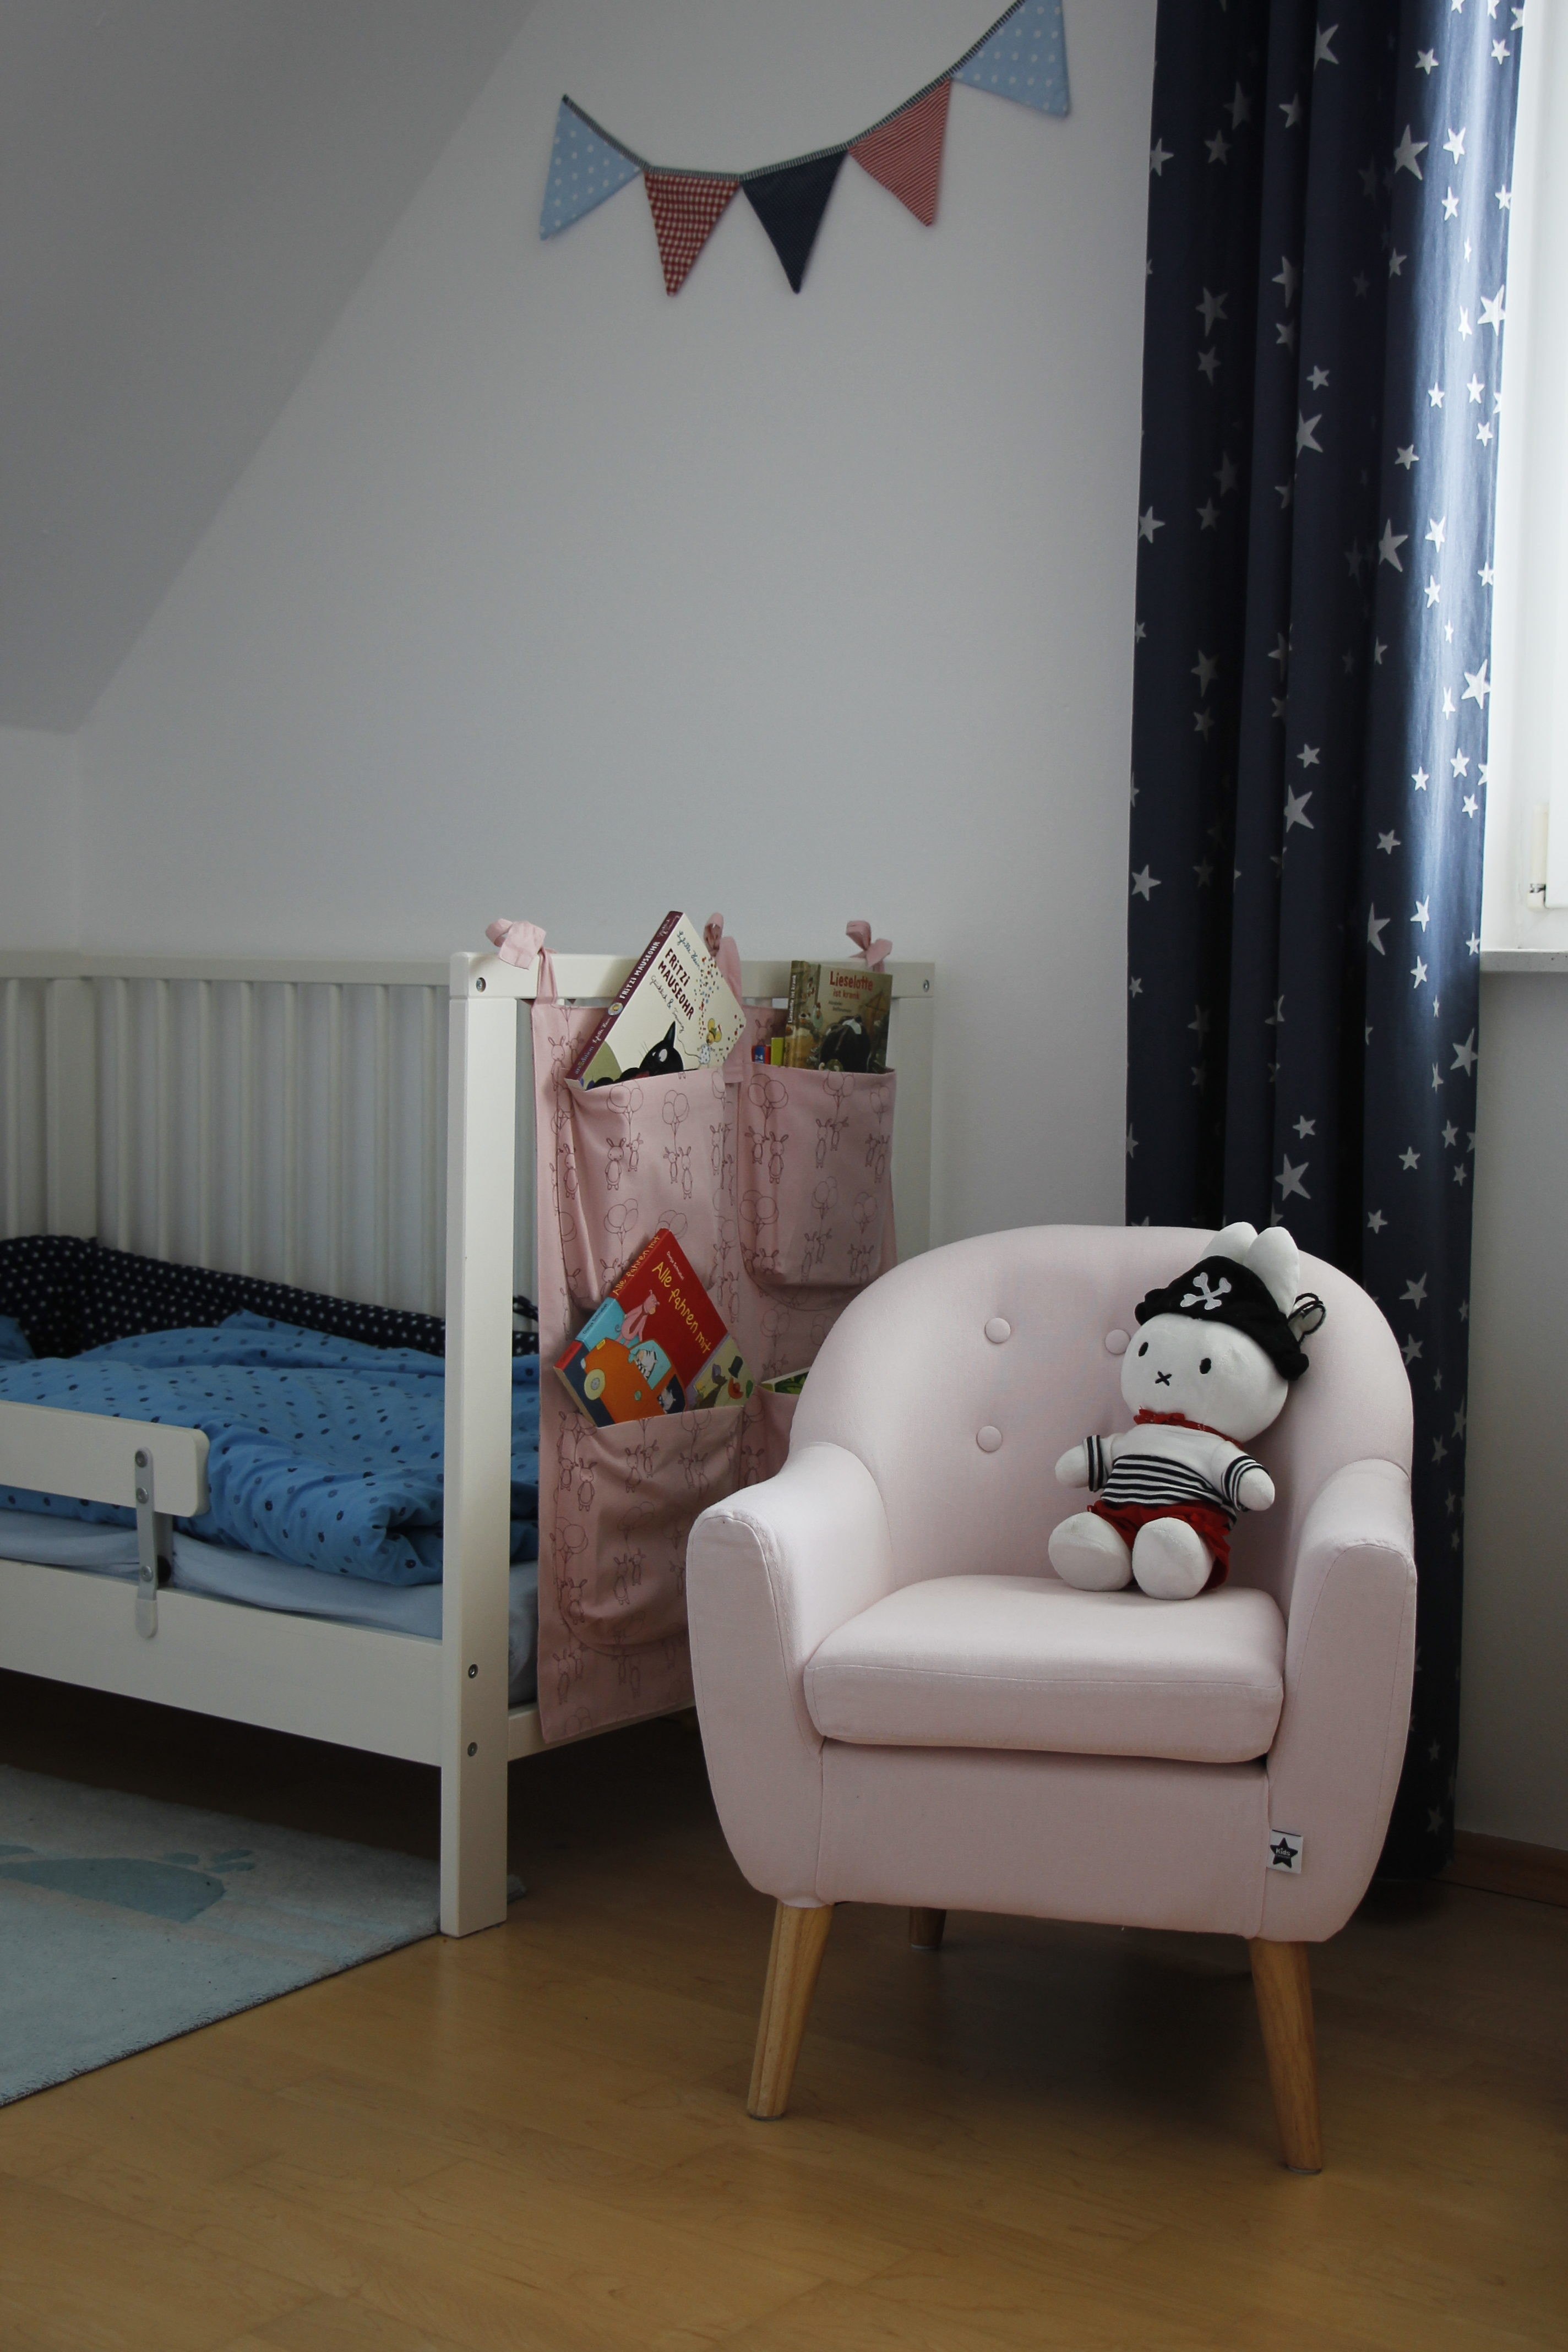 kinderzimmer einrichten lavendelblog. Black Bedroom Furniture Sets. Home Design Ideas